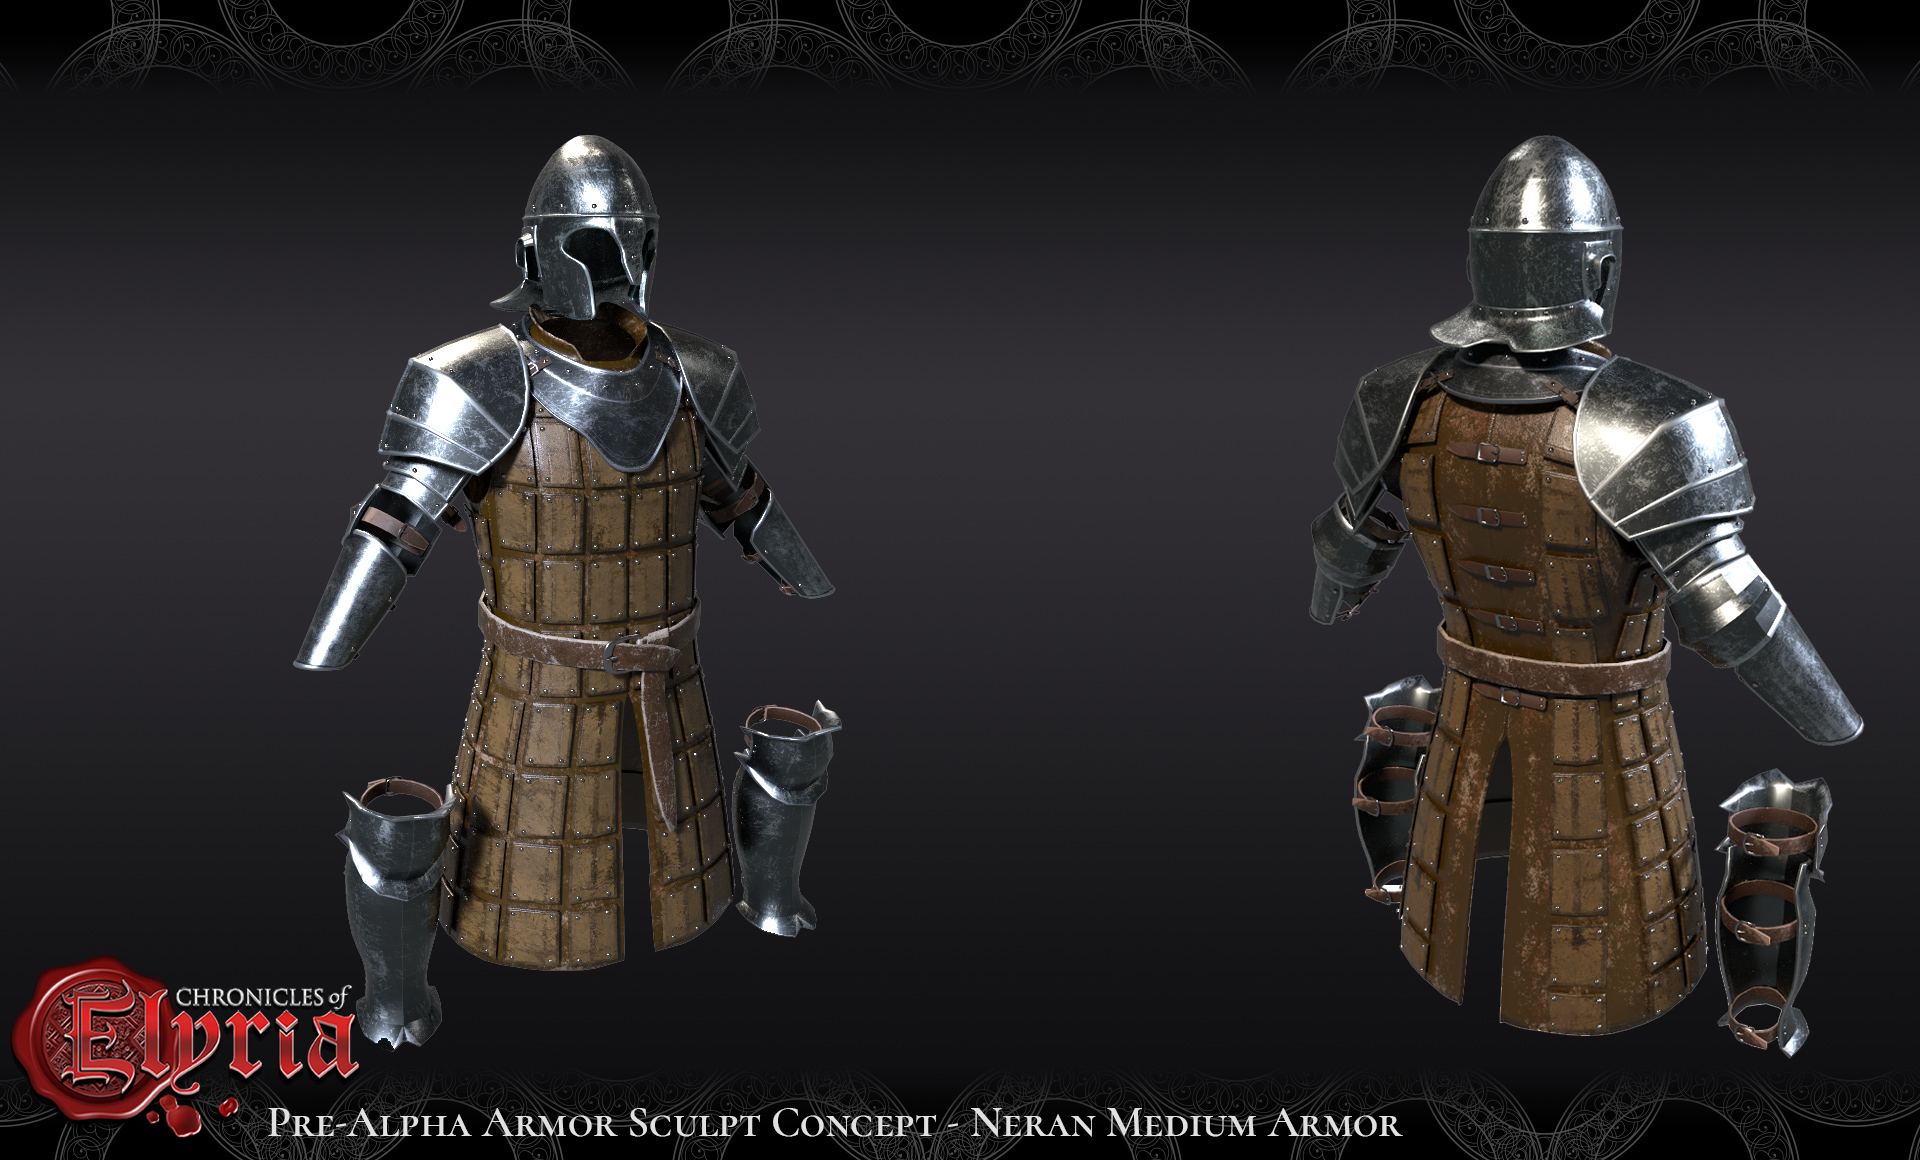 Make My MMO: Chronicles of Elyria's armor, Shroud of the Avatar's R62 | Massively Overpowered